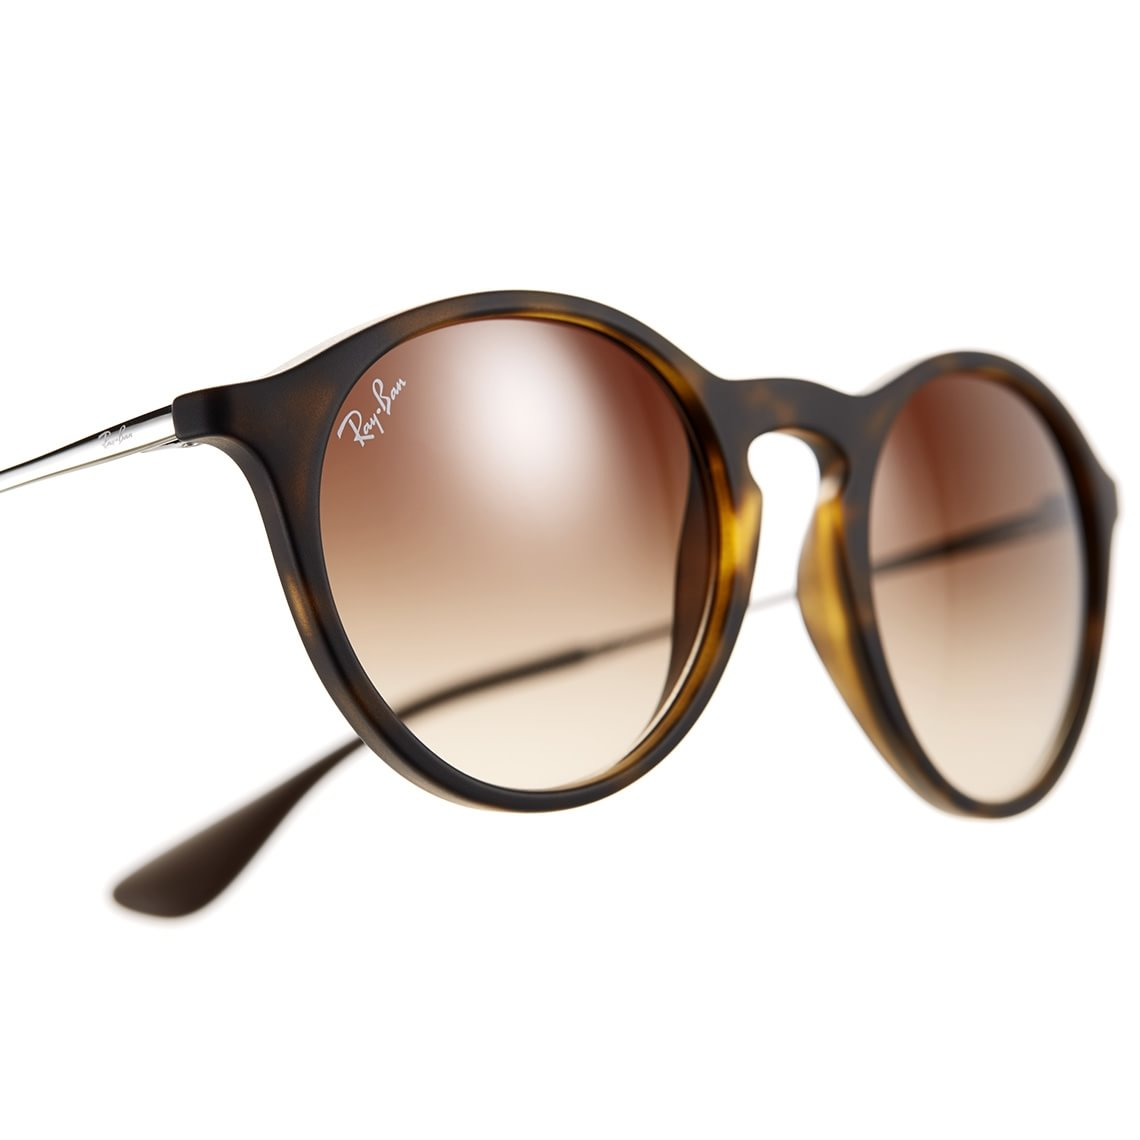 0e8a8ba286 Ray-Ban RB4243 865 13 49 - Synsam